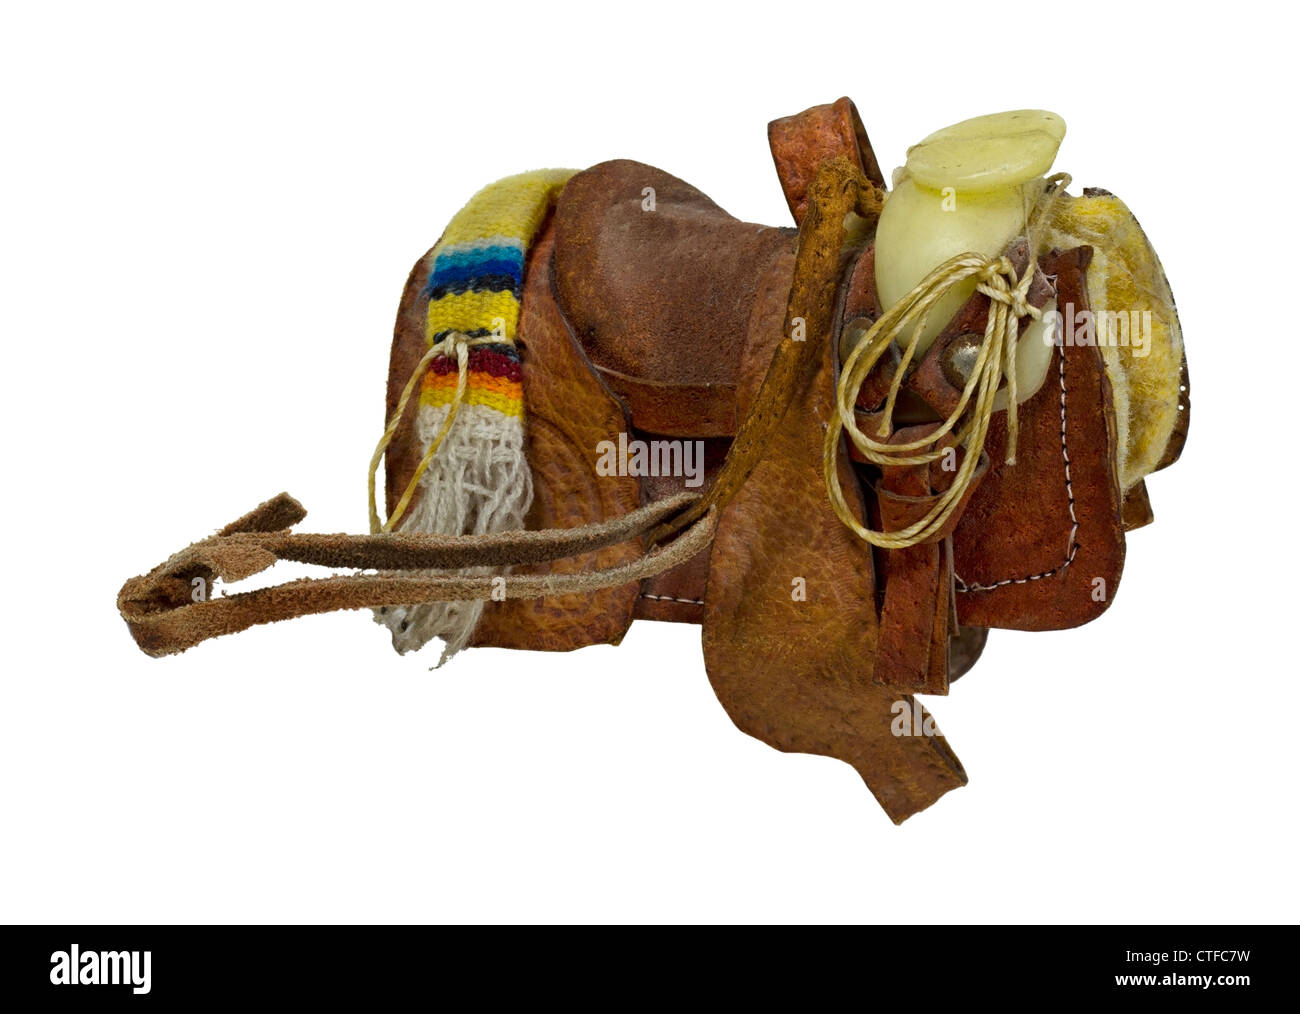 Old western saddle made of heavy leather for riding domestic horses - path included Stock Photo